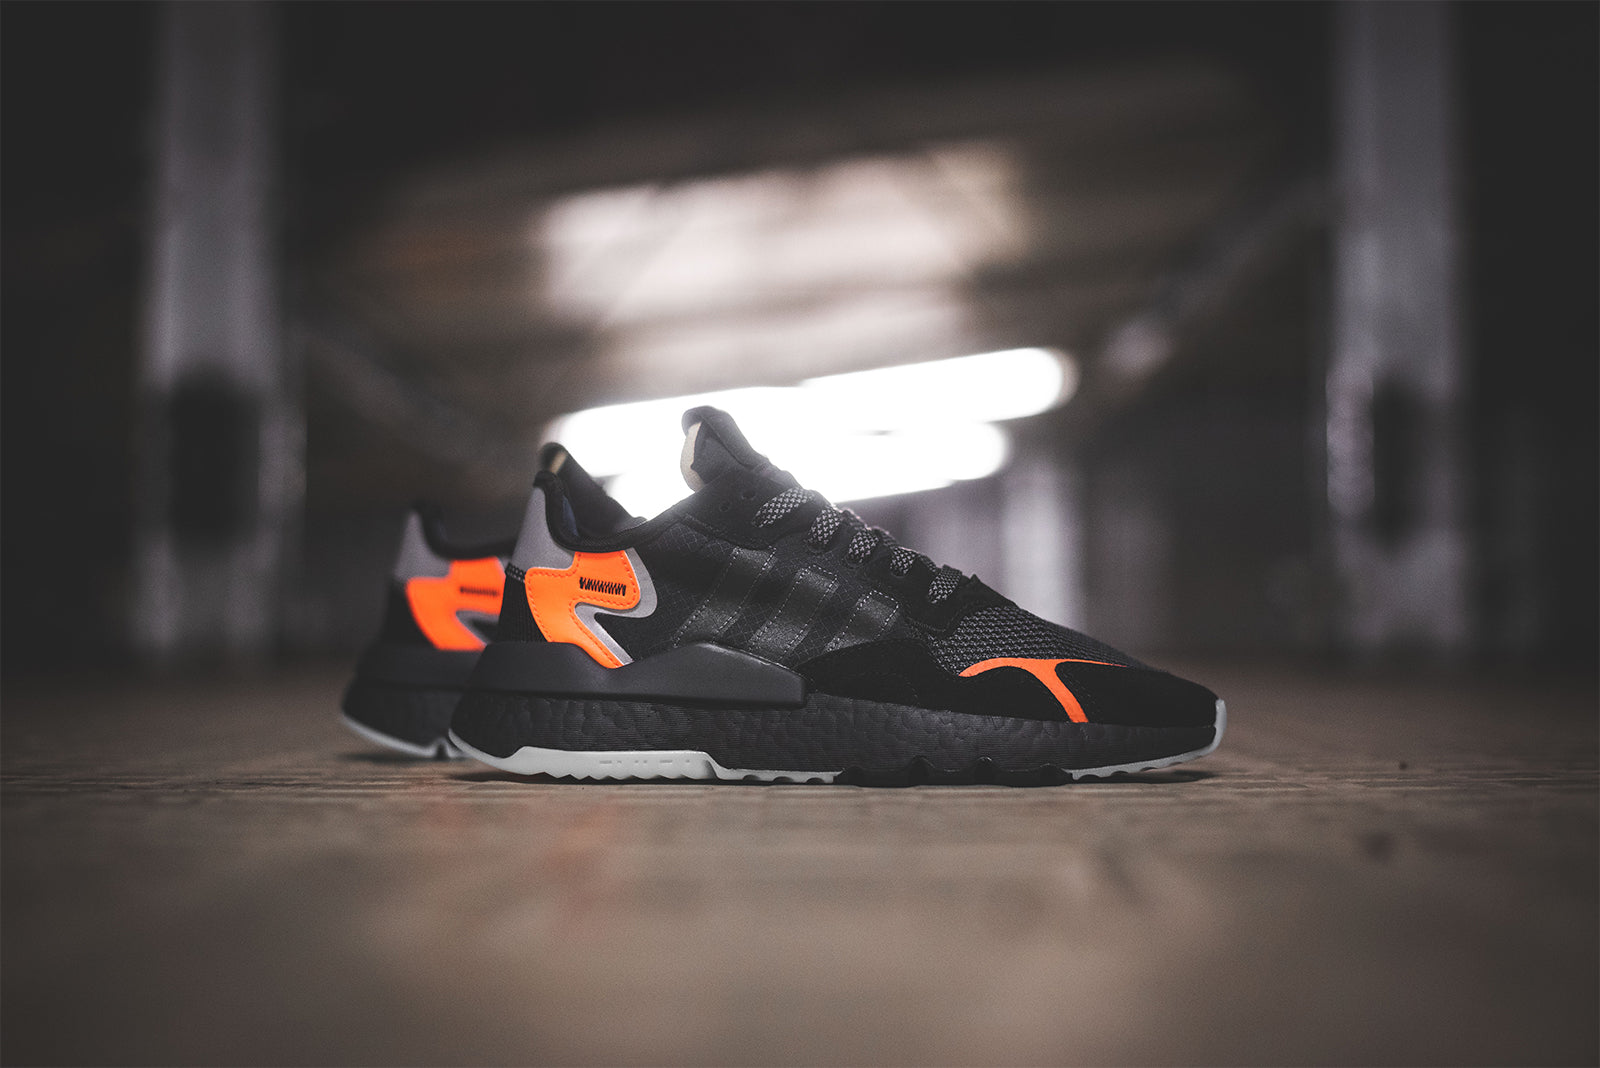 25fc0449dd100 For 2019 adidas present the Nite Jogger